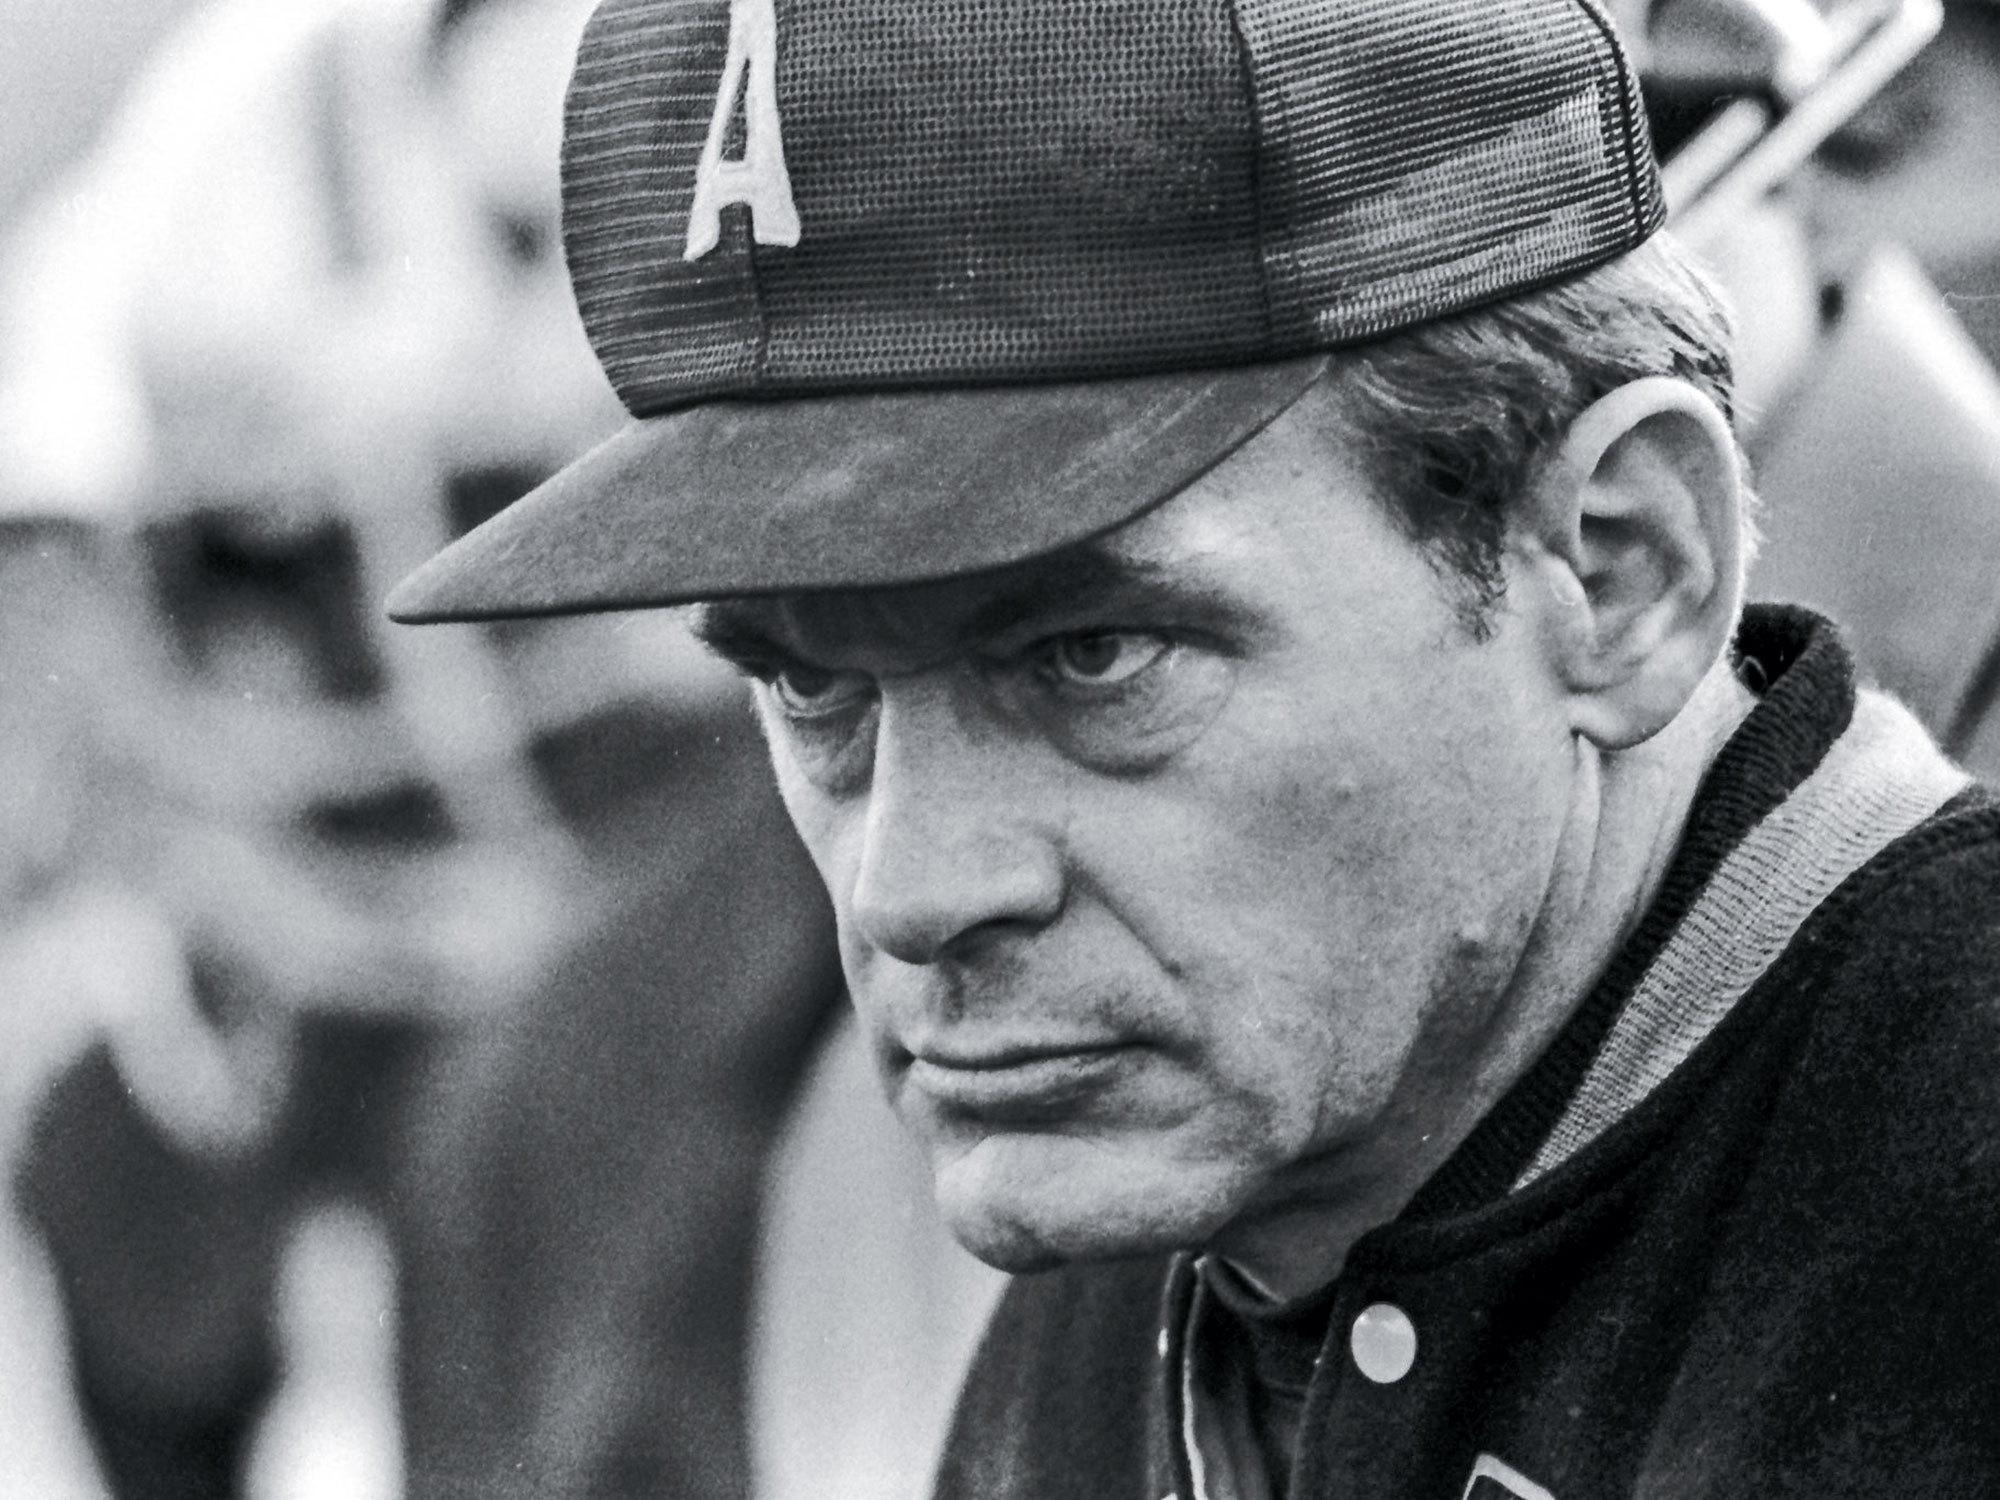 Homer Smith coached college football for 36 years, serving as the head coach of Army in the mid-1970s before offensive coordinator stints at UCLA, Alabama and Arizona.